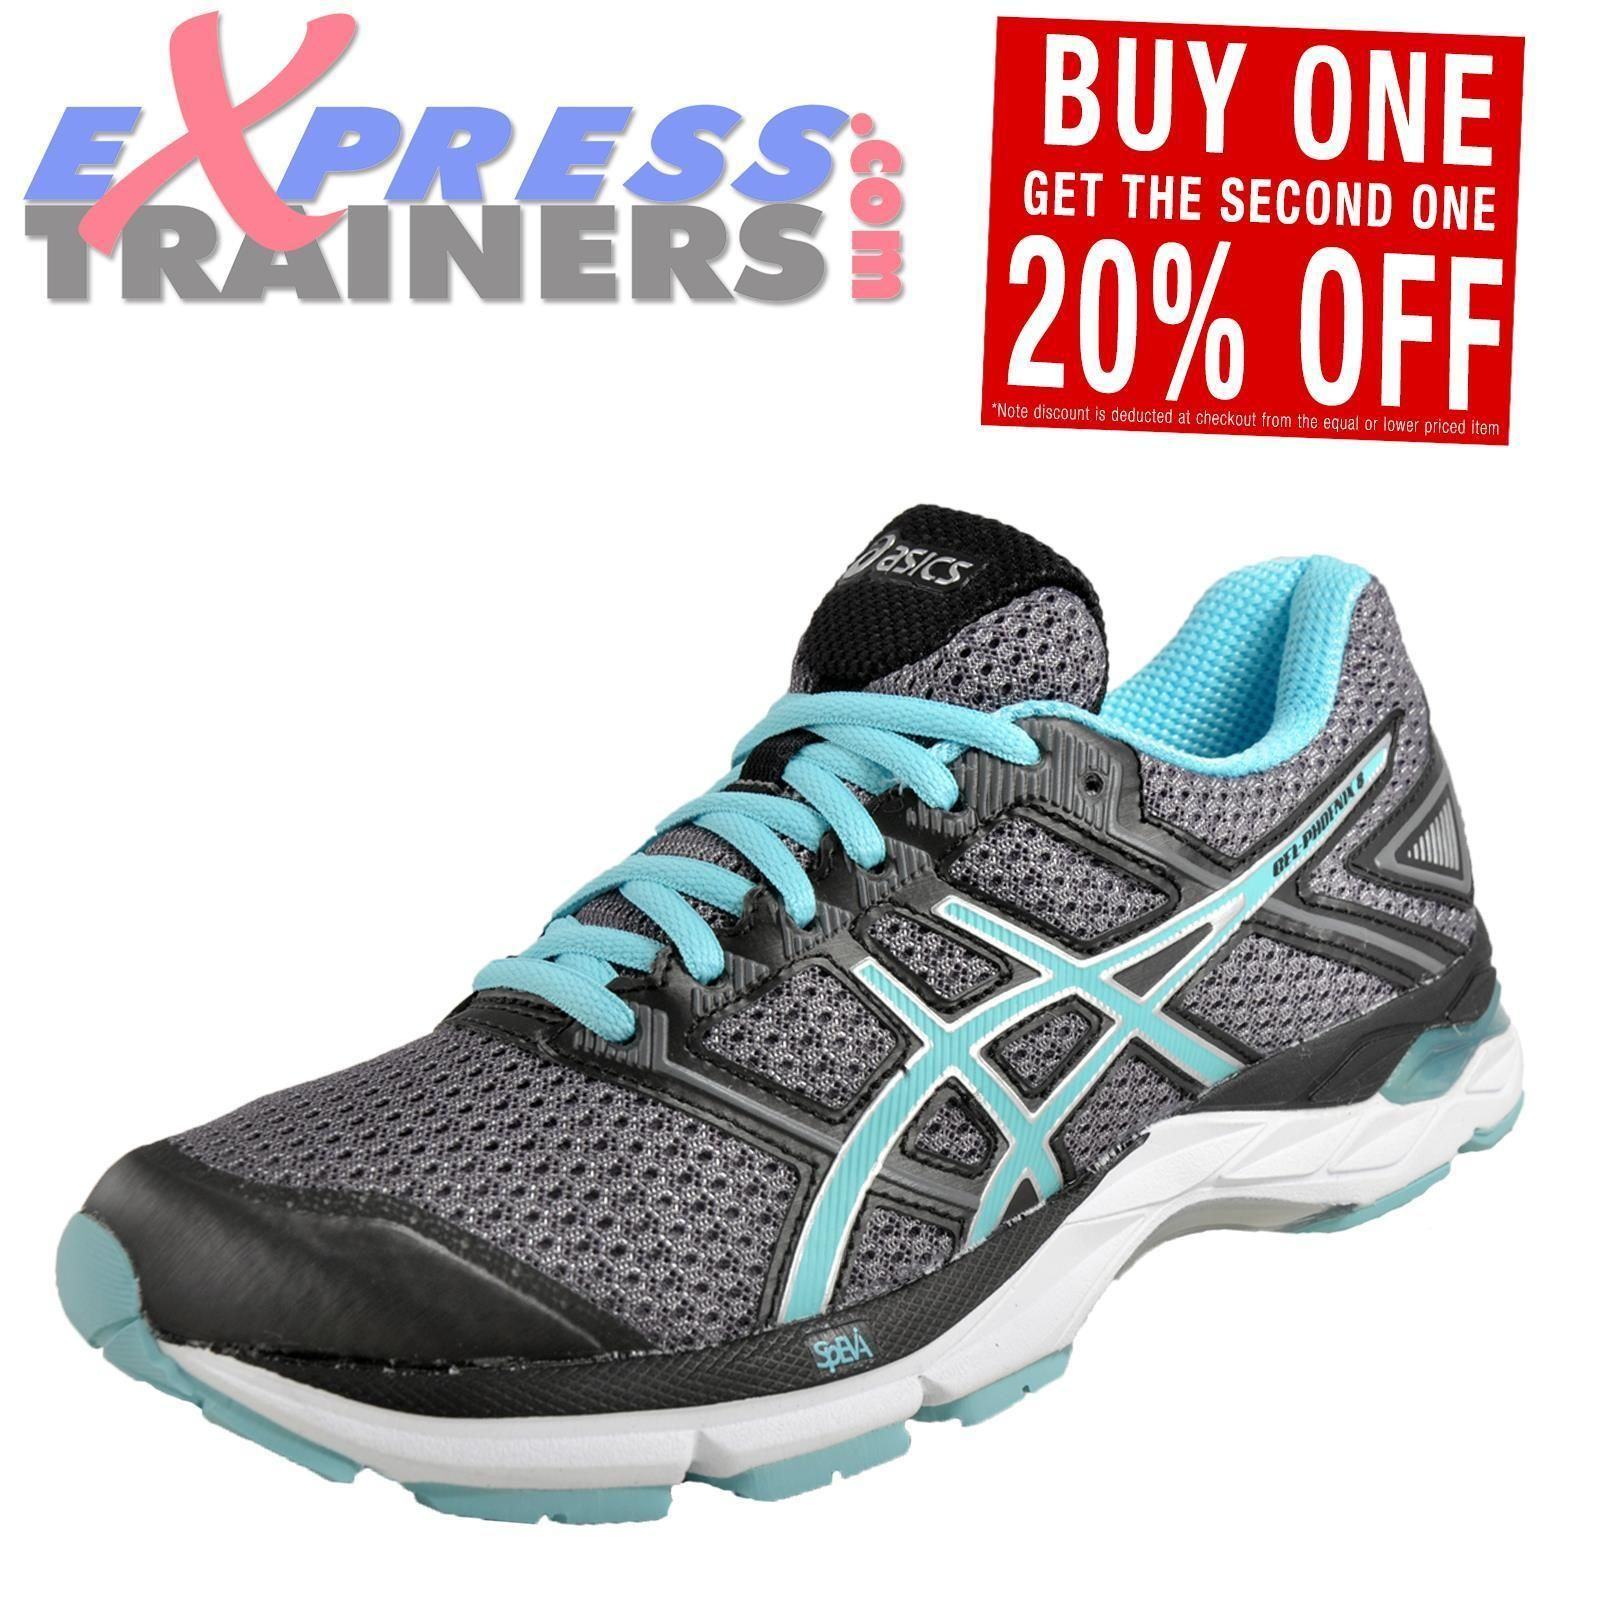 575909c719236 Asics Gel Phoenix 8 Womens Running Shoes Fitness Gym Trainers Carbon ...